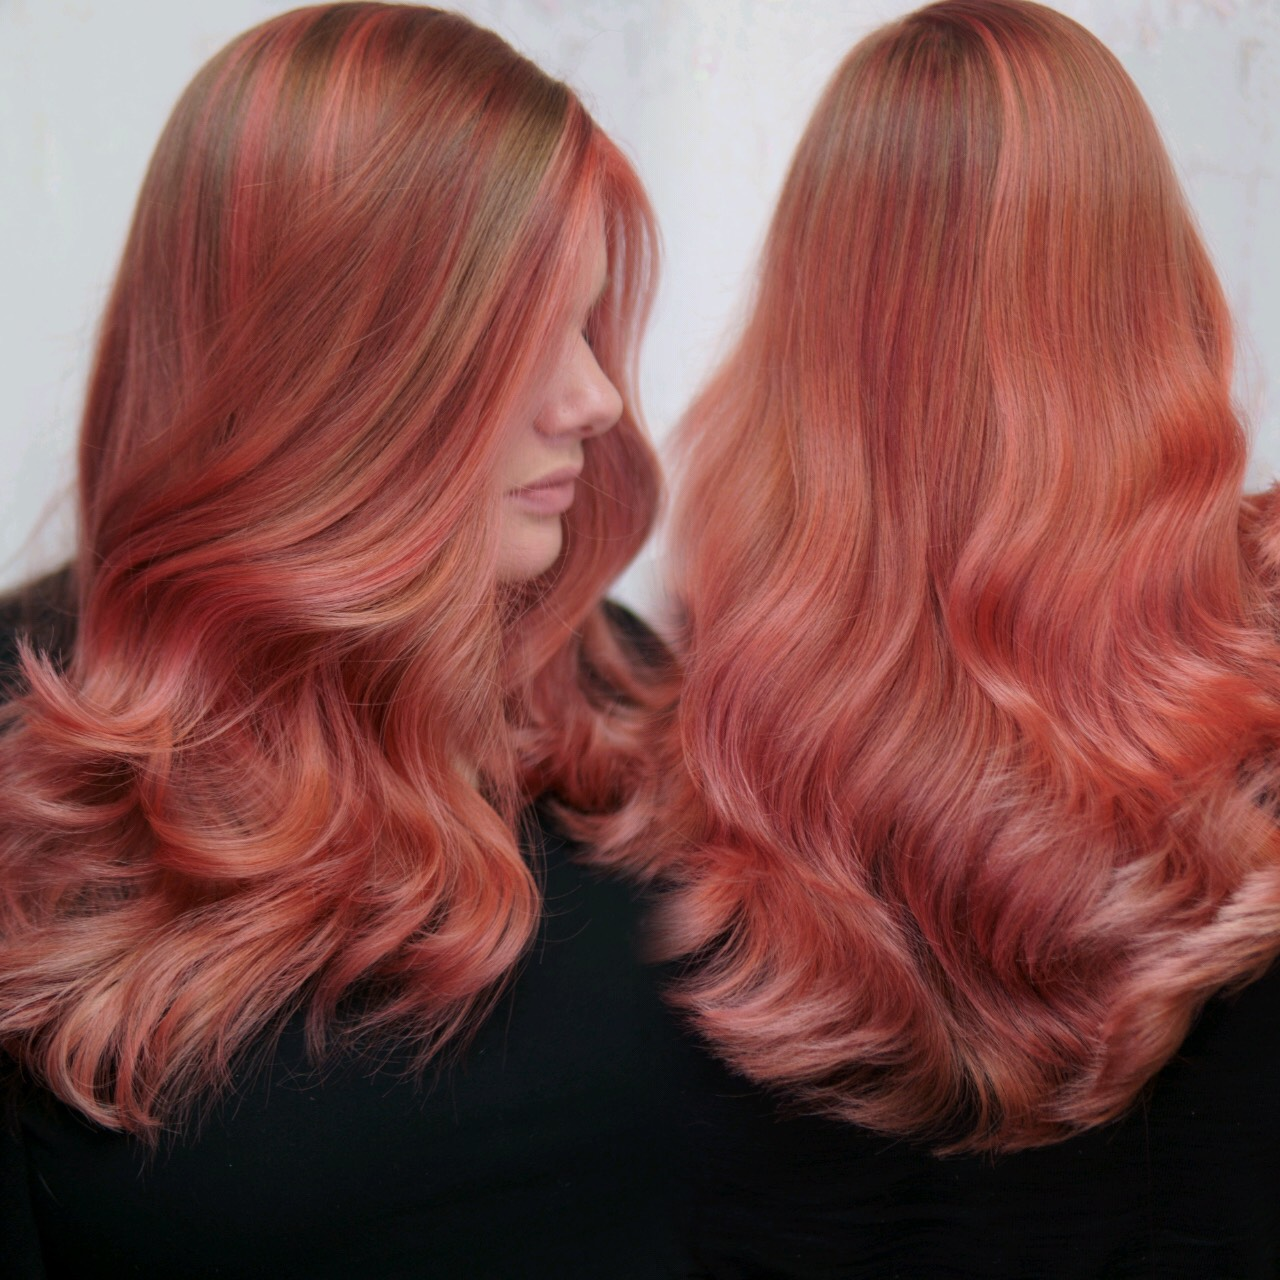 Rose Gold Hair- Cryistal Chaos